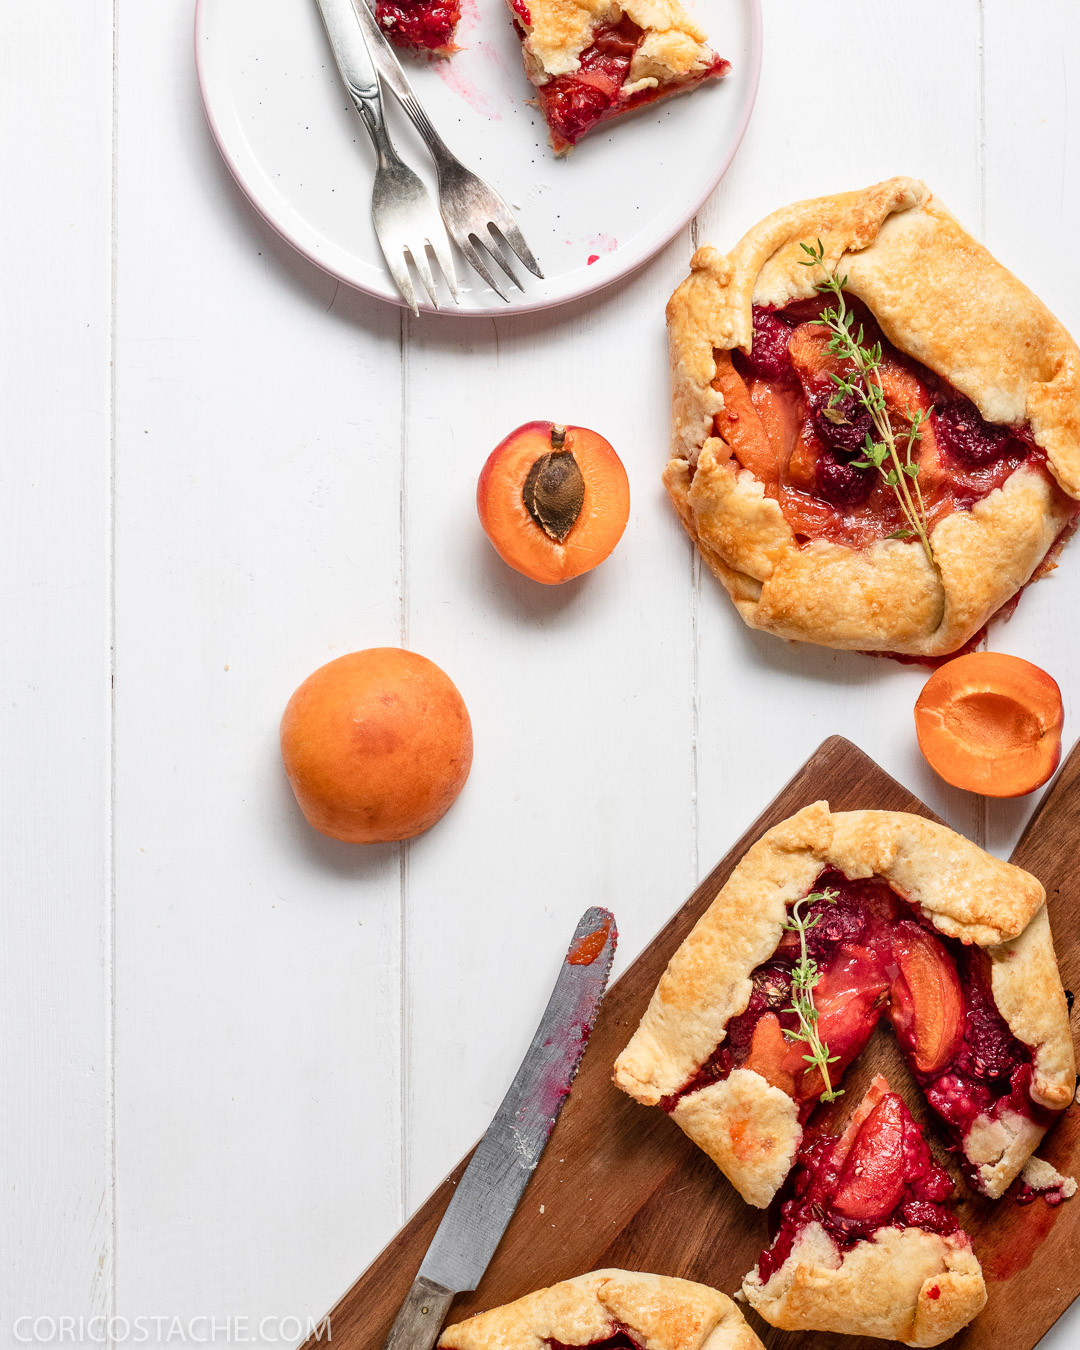 Mini Summer Galettes with Apricots and Raspberries